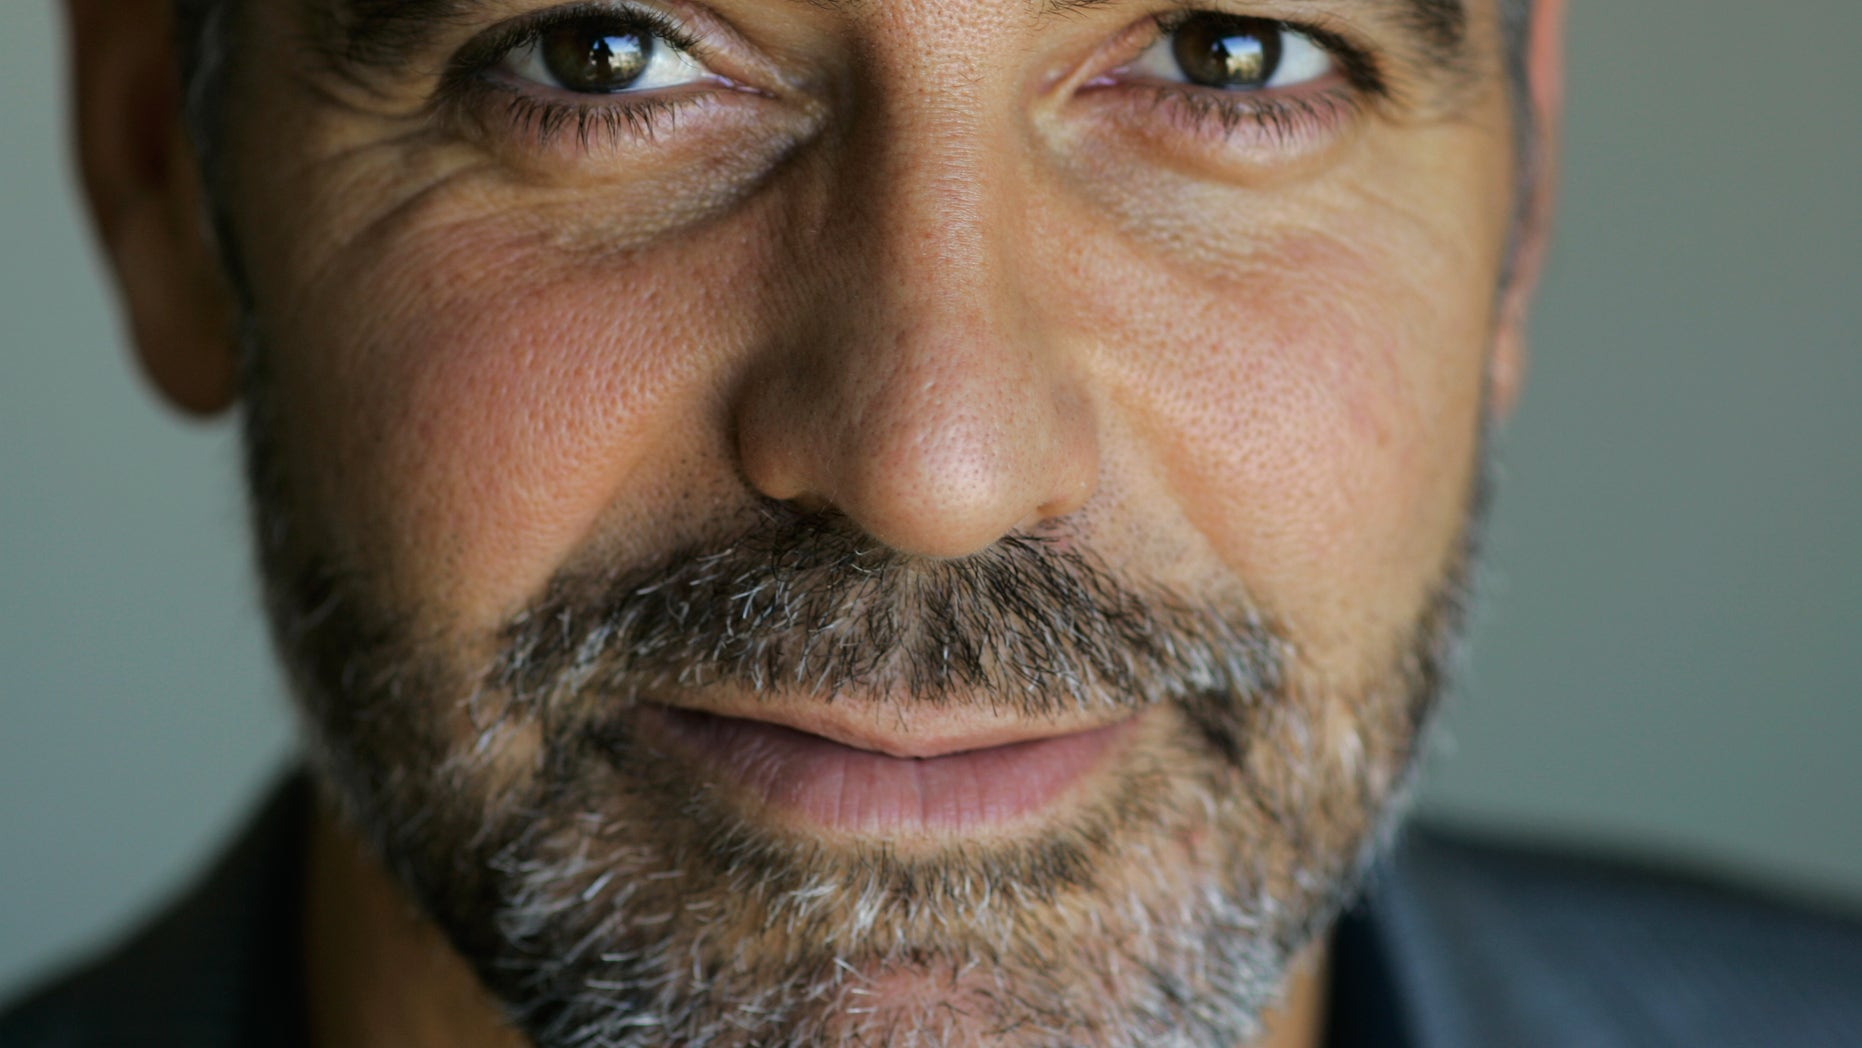 In this 2007 file photo, George Clooney poses for a portrait during the Toronto International Film Festival.  A group founded by Clooney said Dec. 28 it teamed up with Google, a U.N. agency and anti-genocide organizations to launch satellite surveillance of the border between north and south Sudan to try to prevent a new civil war.